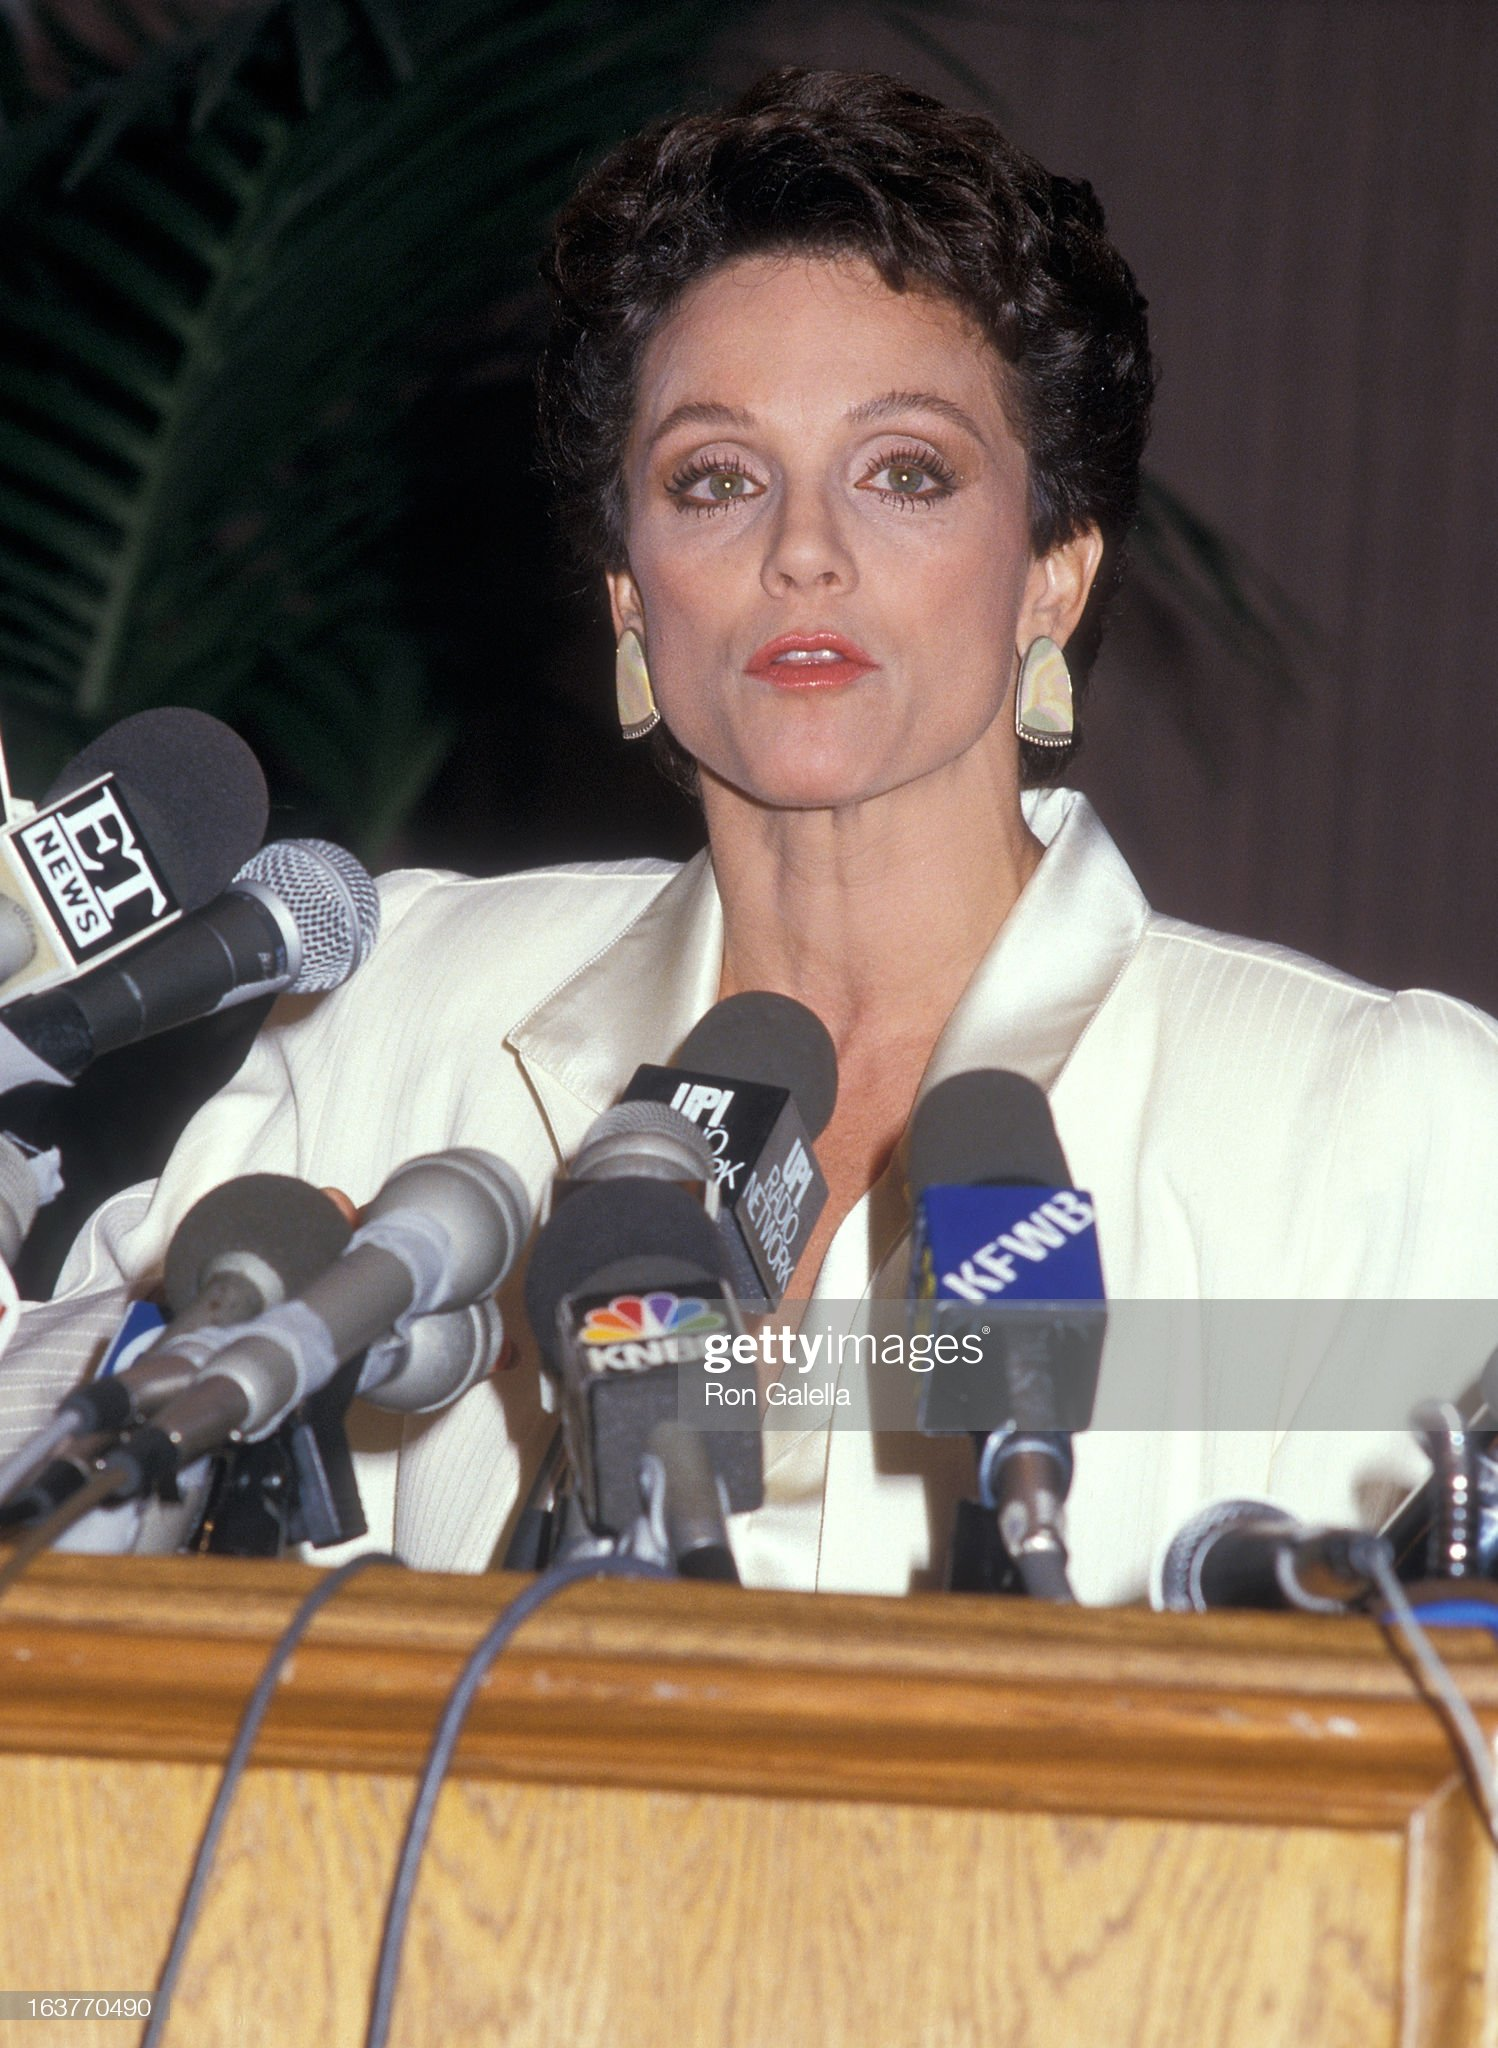 actress-valerie-harper-addresses-the-press-to-speak-about-being-fired-picture-id163770490